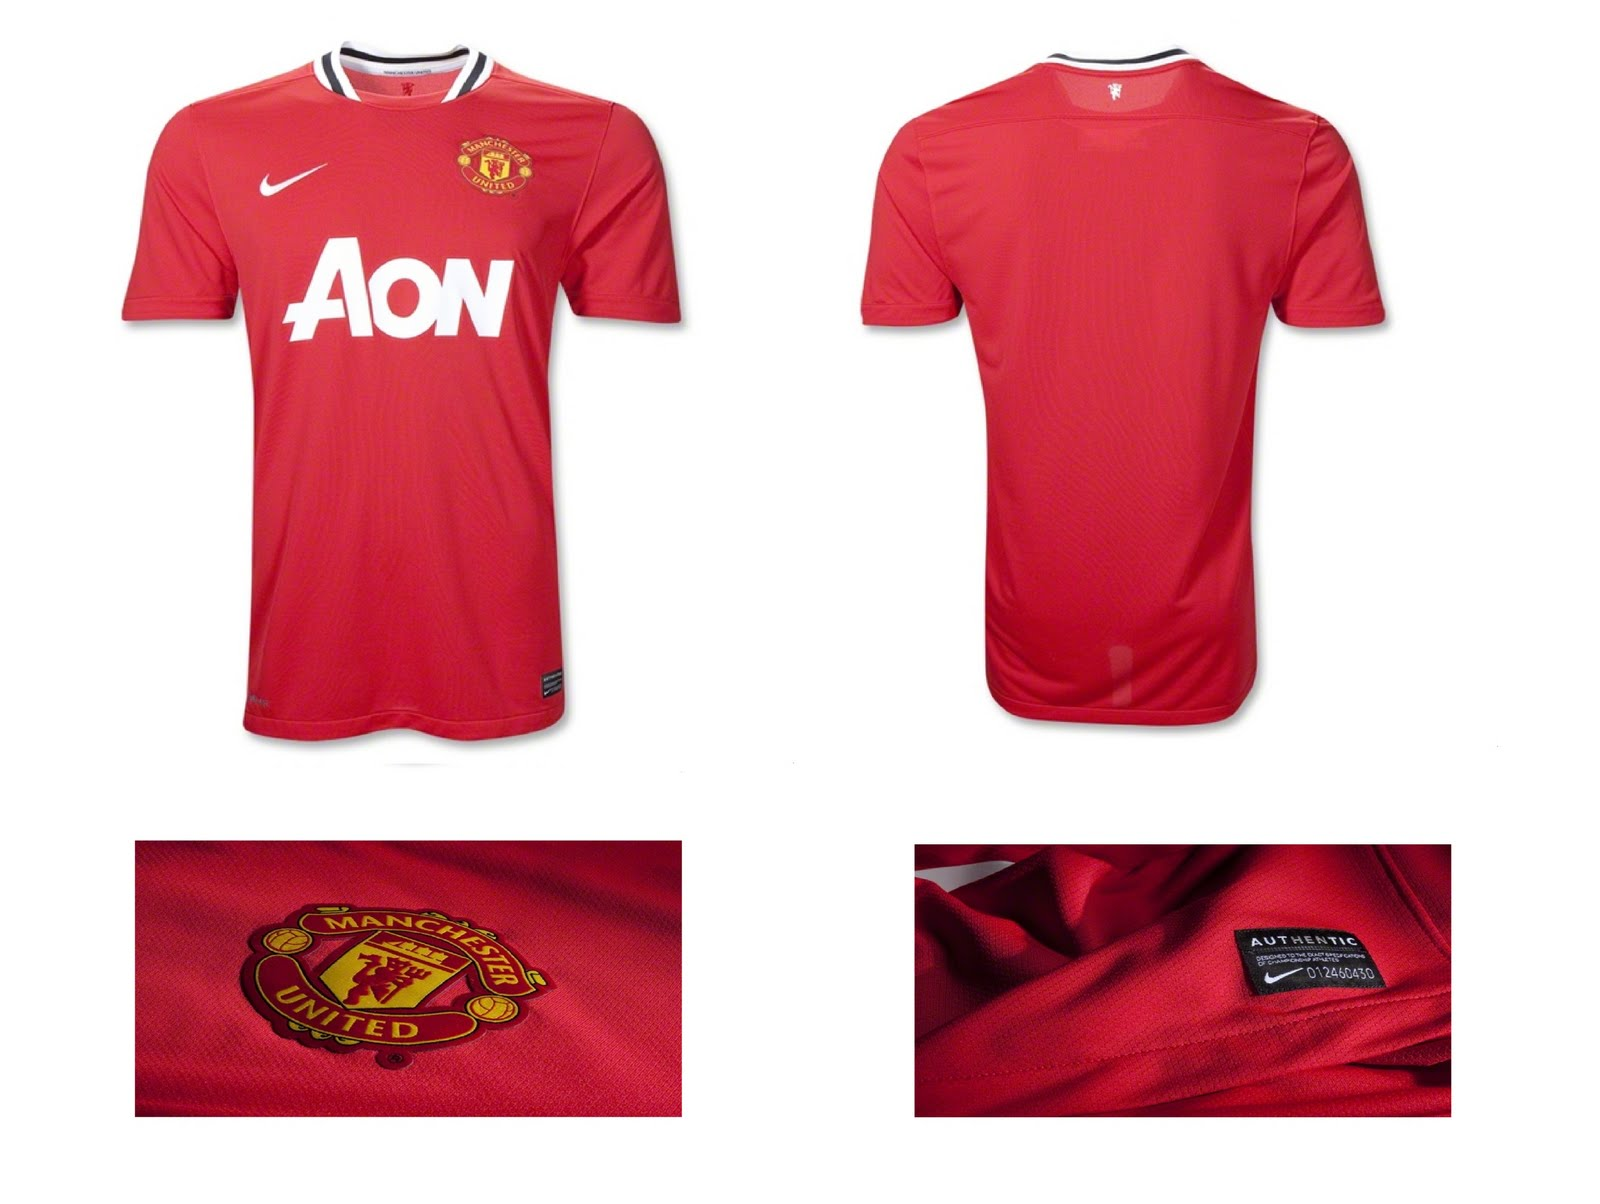 best cheap 706dc 45ef8 Jersey Kit: Manchester United Home Kit 2010/11